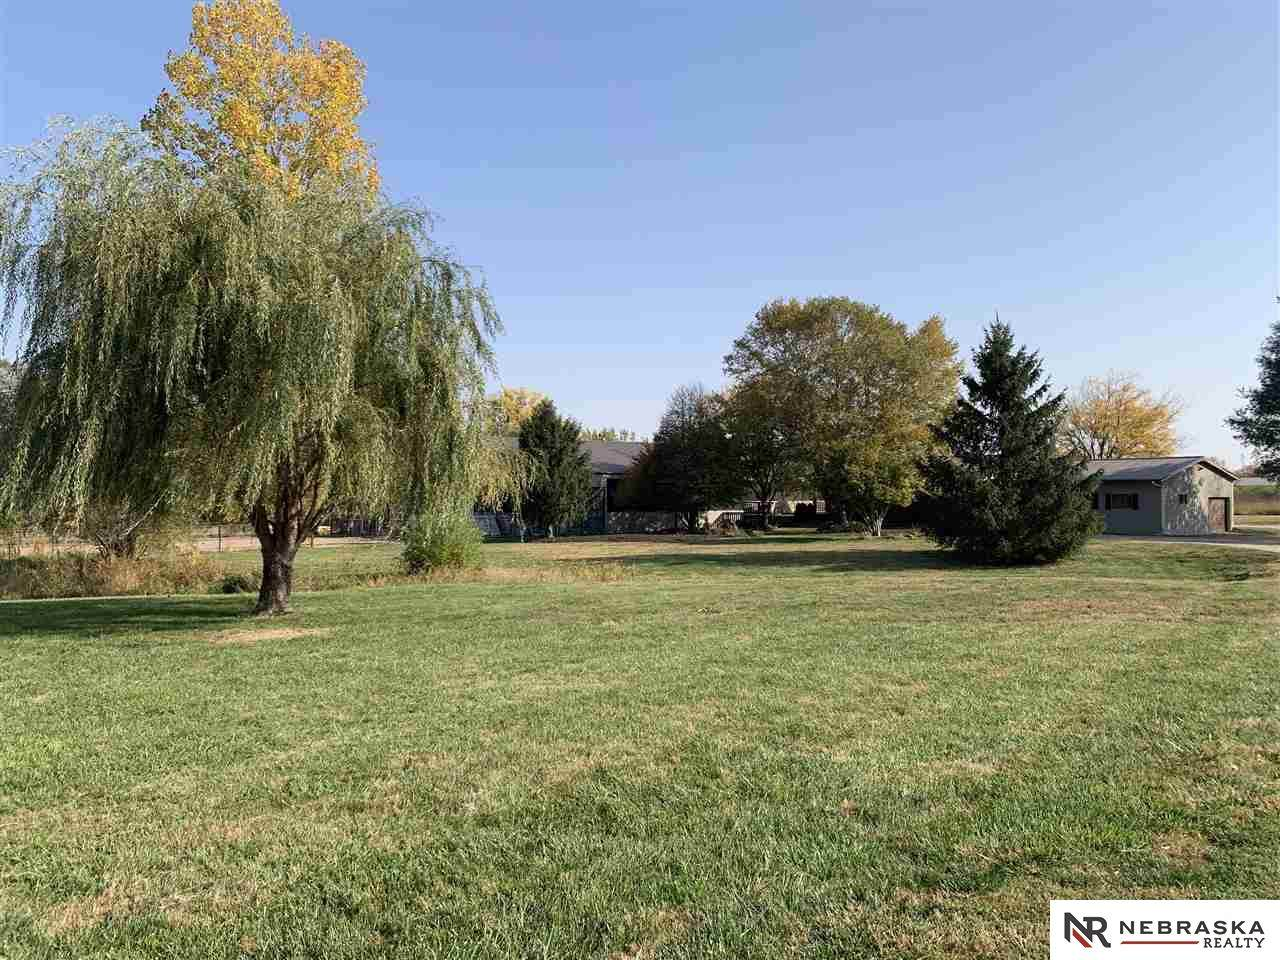 480 County Road 12 Road - Photo 1